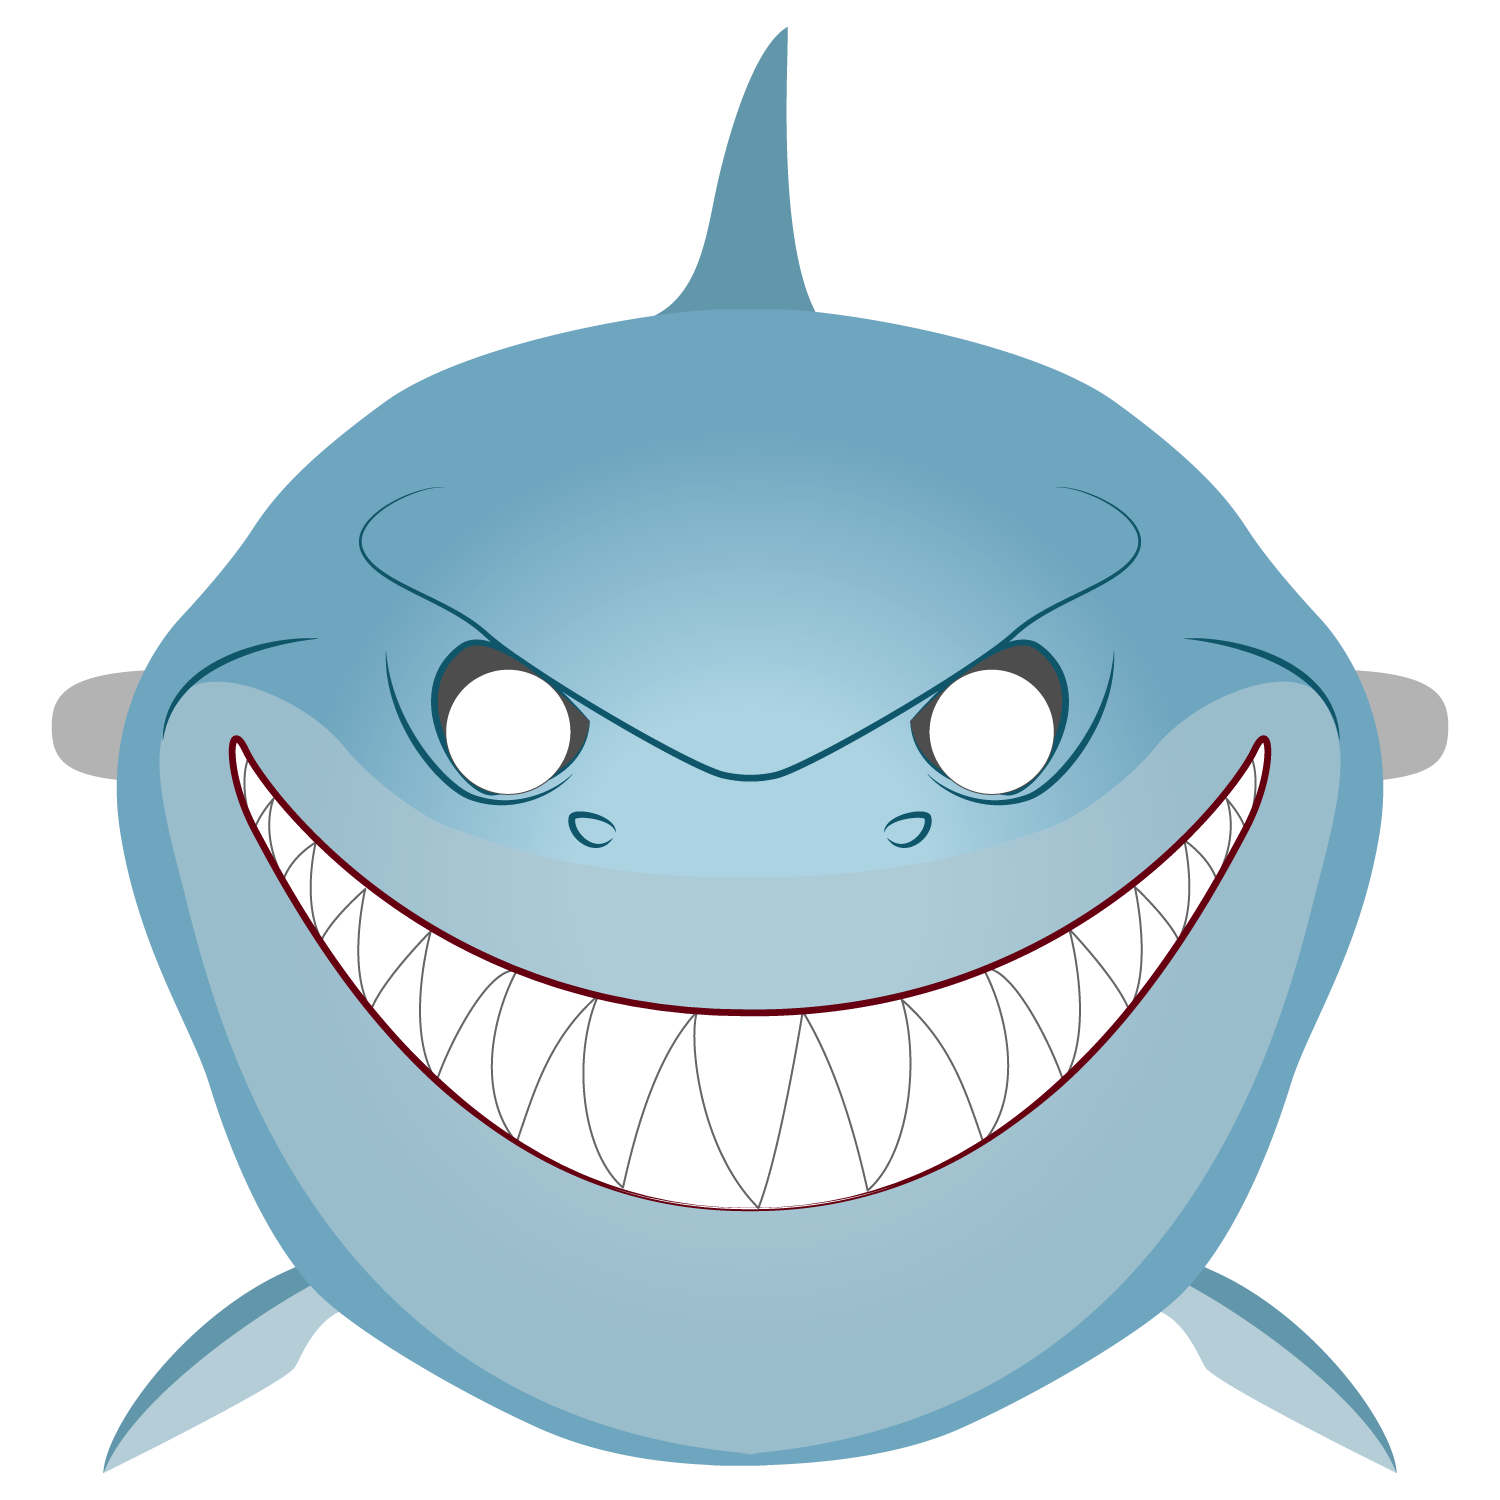 Shark Mask Template Free Printable Papercraft Templates Shark Mask Animal Masks Printable Animal Masks